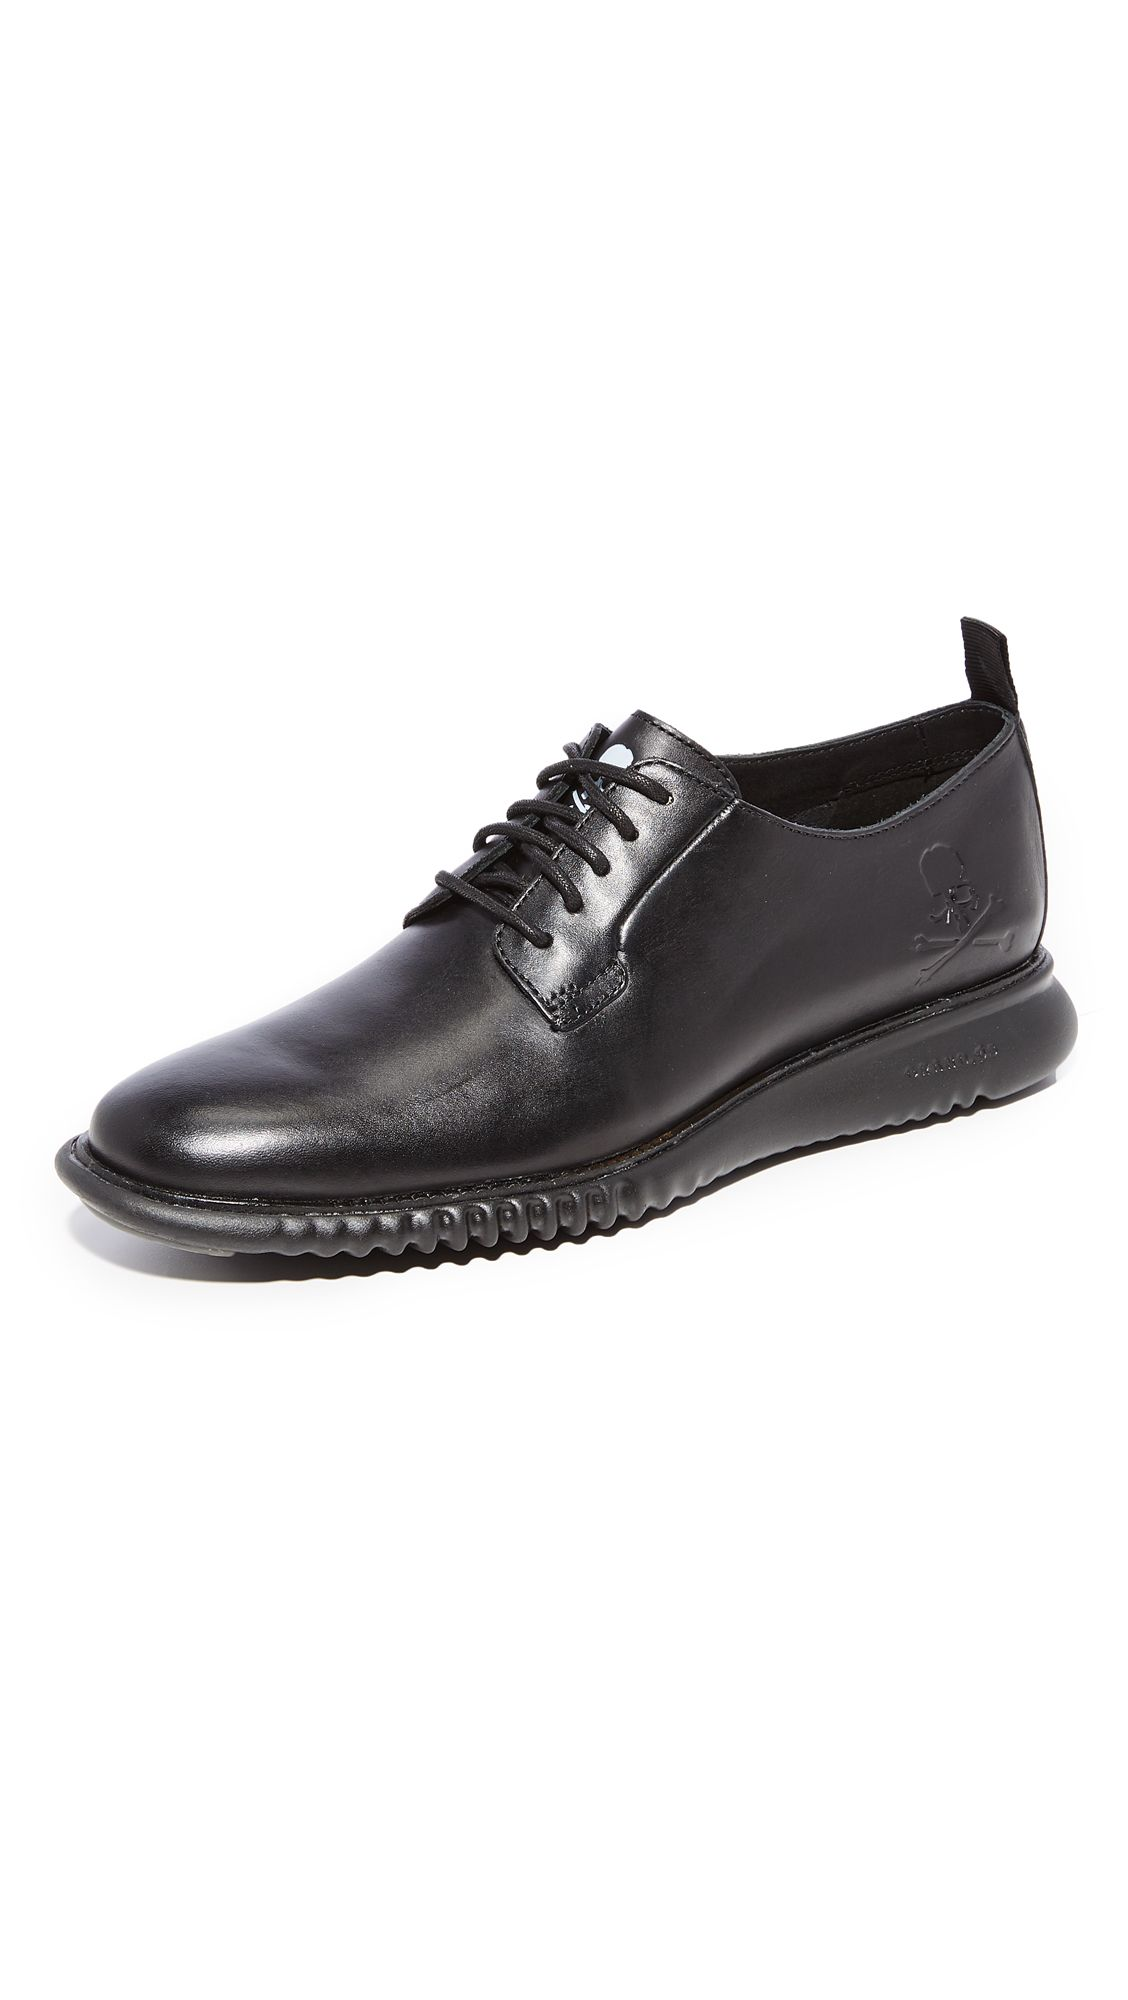 COLE HAAN COLE HAAN X MASTERMIND JAPAN 2 ZEROGRAND OXFORDS. #colehaan #shoes  #